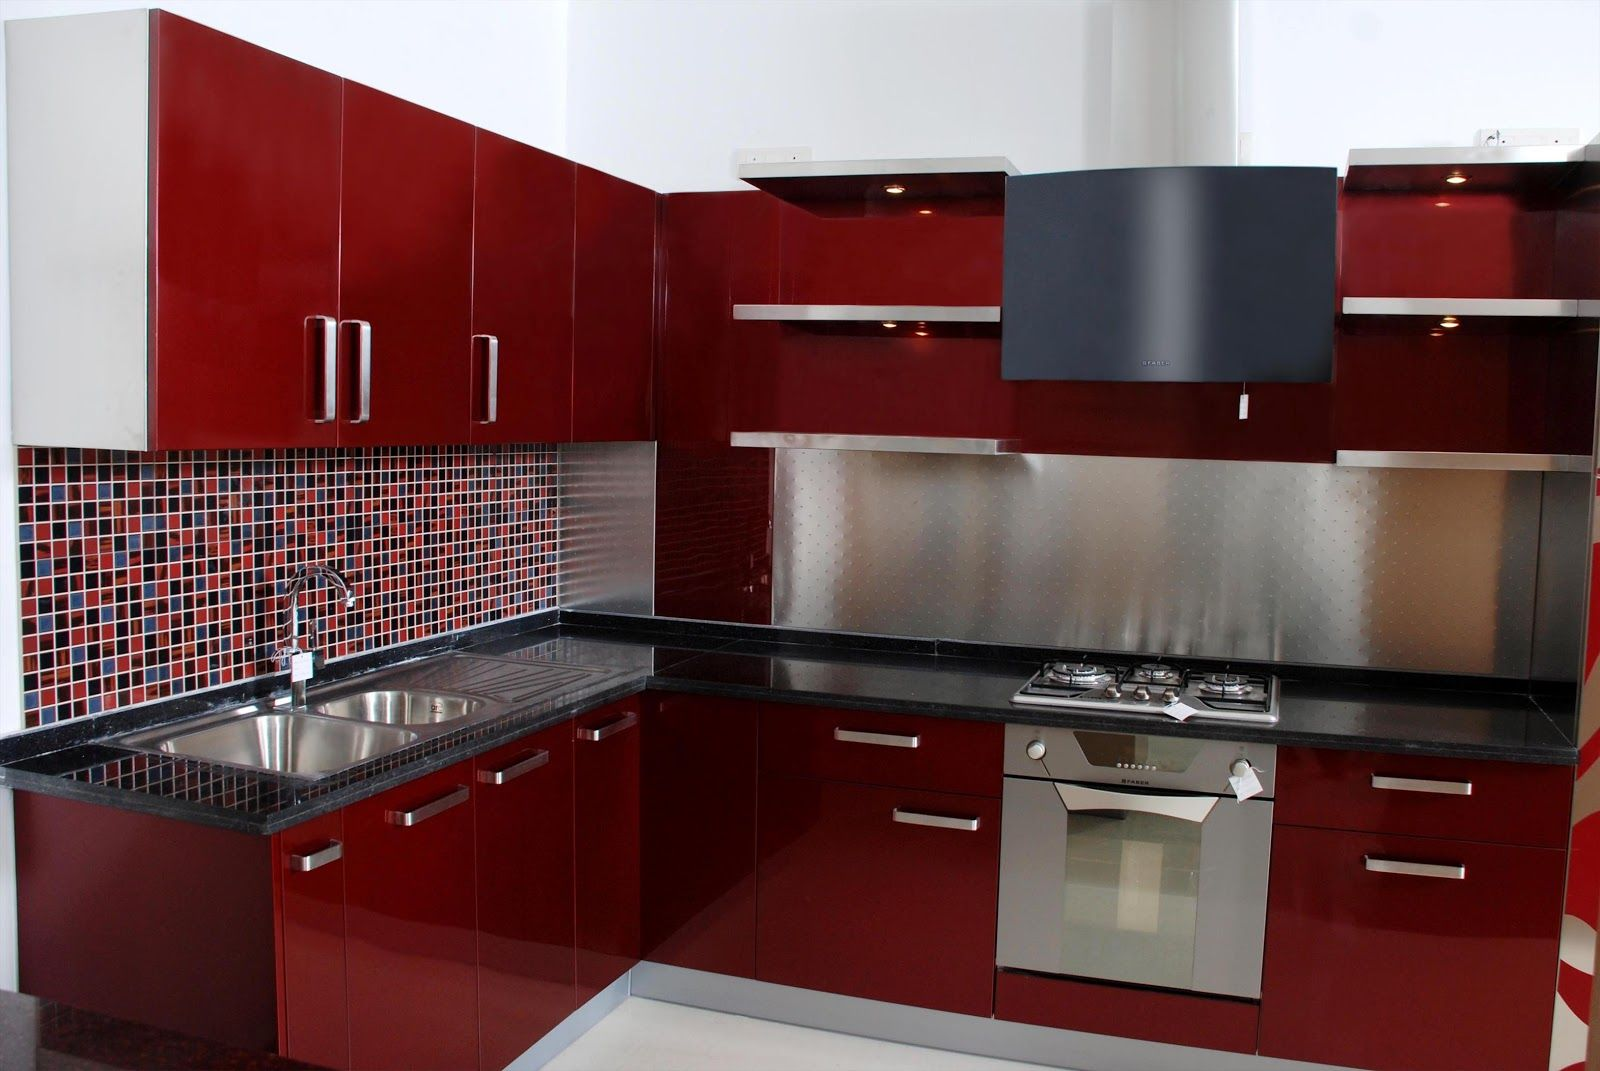 Parallel kitchen design india google search kitchen for Red white and black kitchen designs